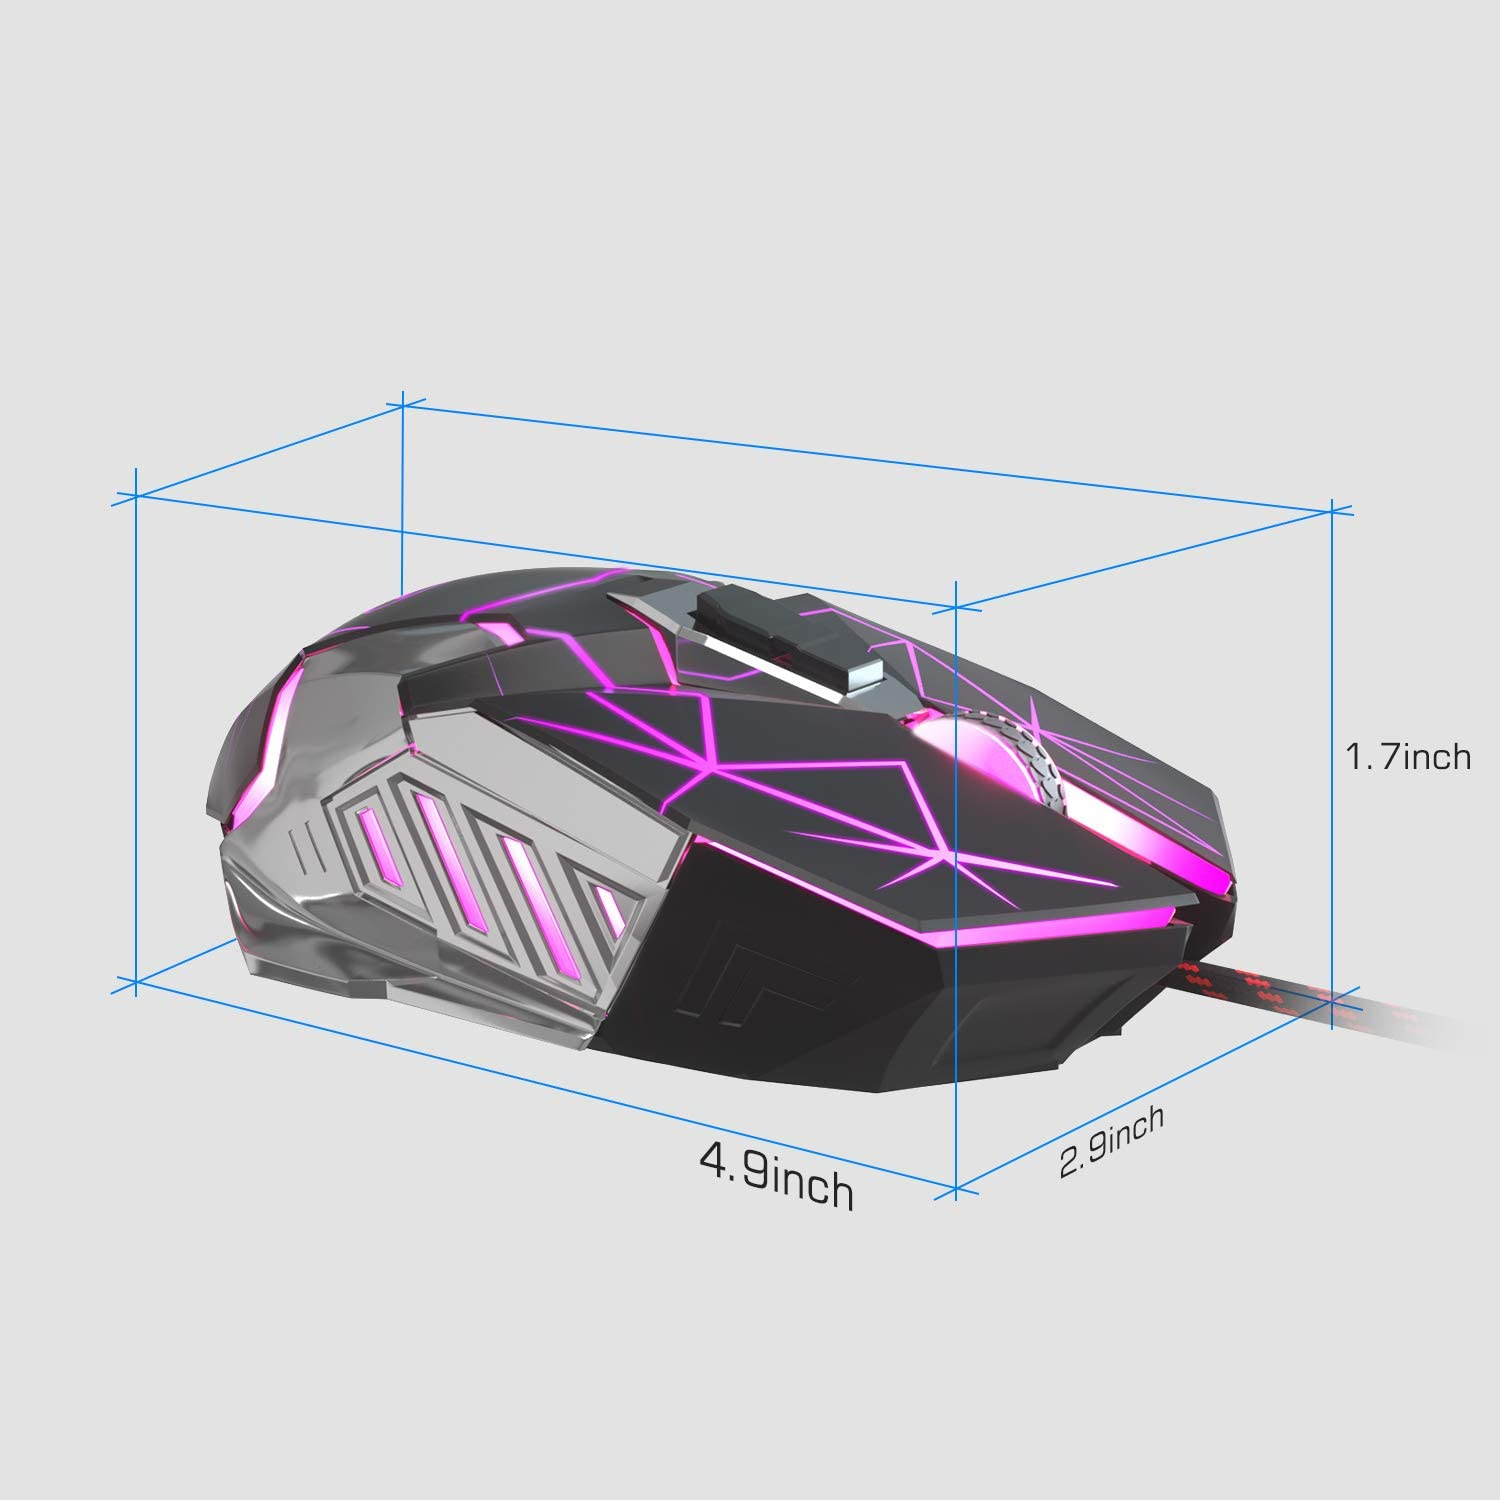 MageGee G10 Gaming Mouse Wired, 7 Colors Breathing LED Backlit Gaming Mouse, 6 Adjustable DPI (up to 3200 DPI), Ergonomic Optical Computer Mouse with 7 Buttons for Windows PC Gamers